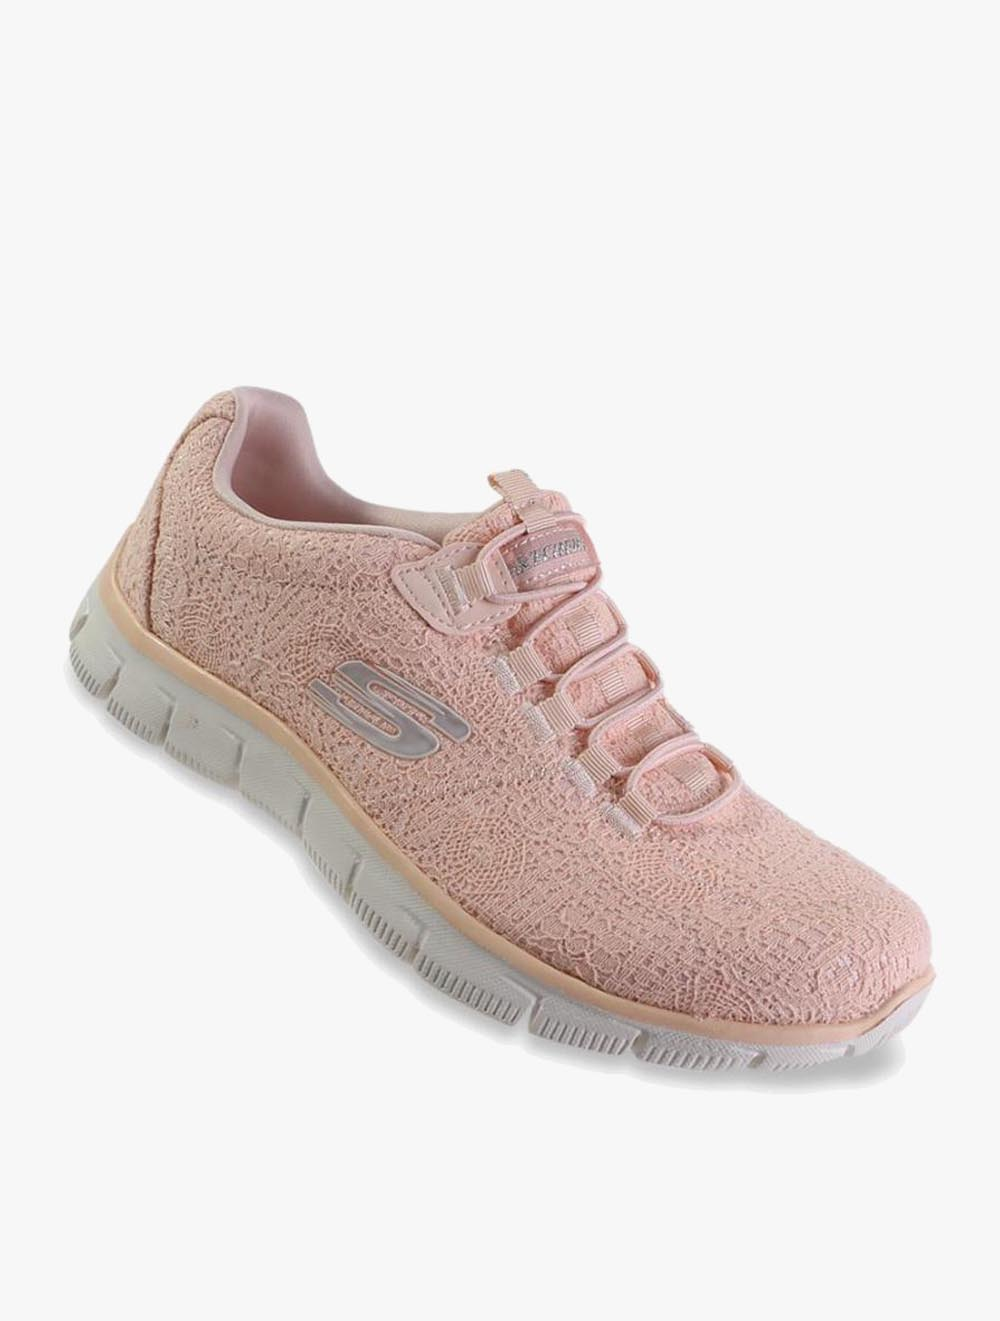 Skechers Relaxed Fit: Empire Spring Glow Women's Sneakers